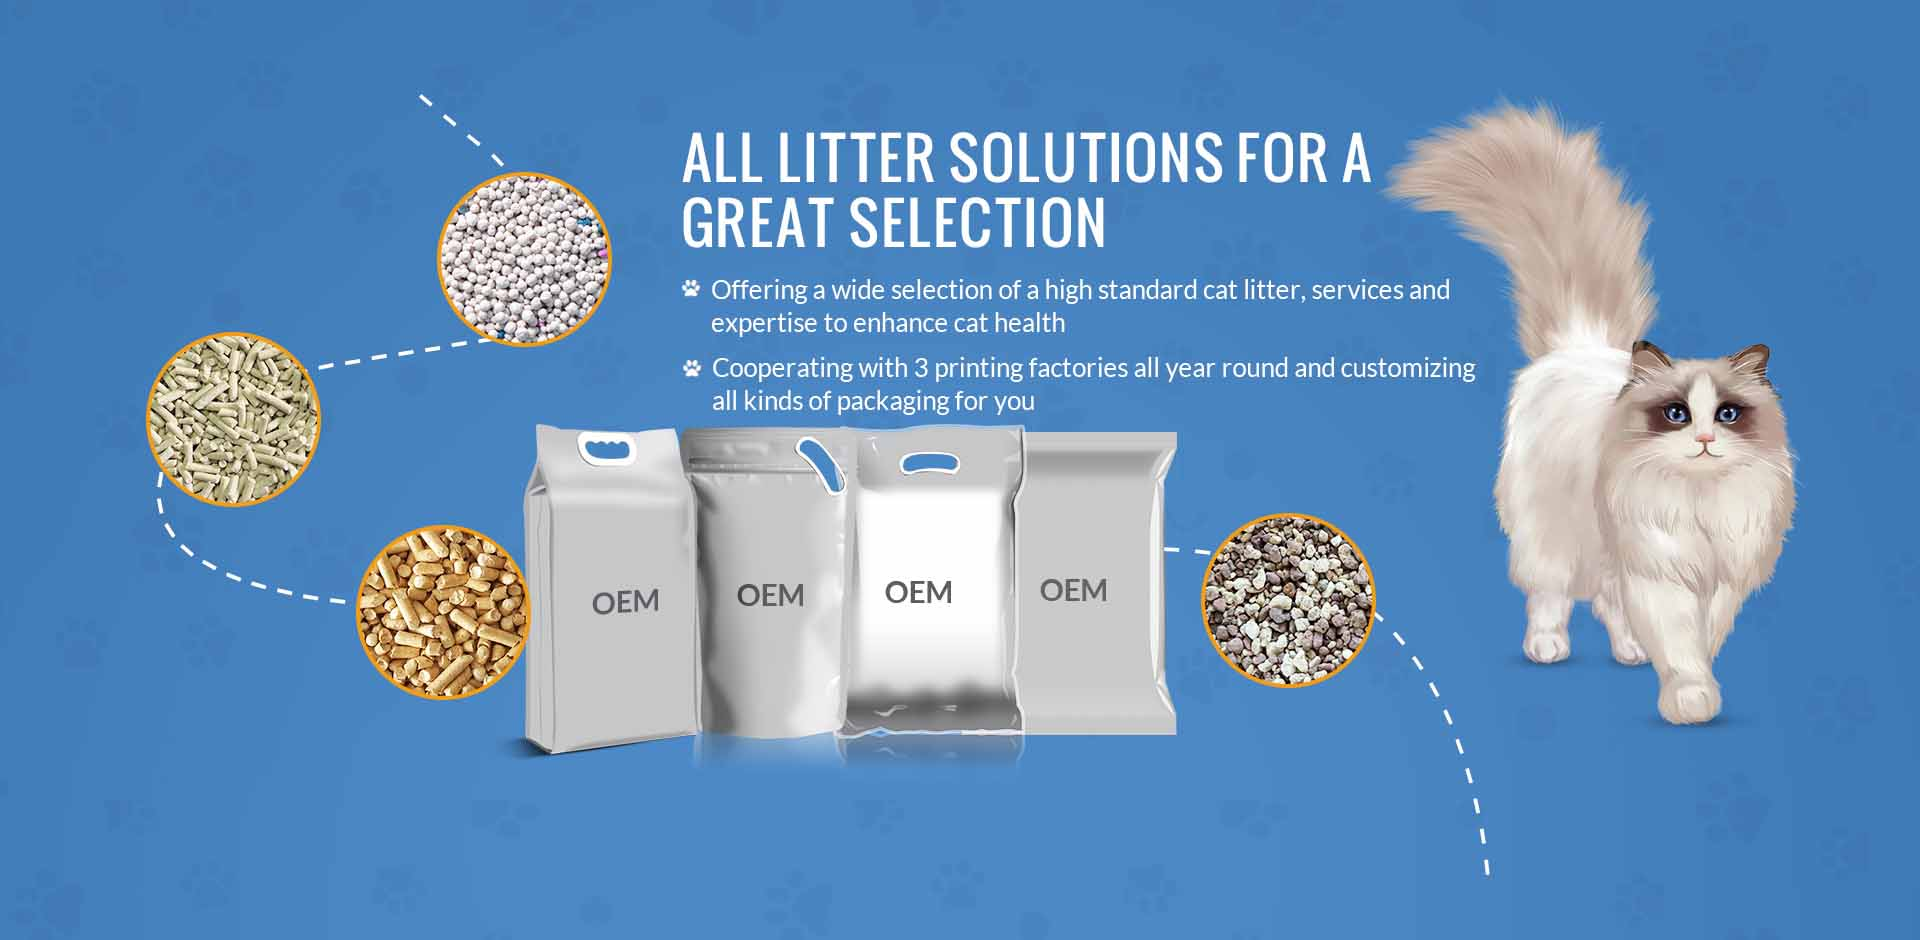 ALL LITTER SOLUTIONS FOR A GREAT SELECTION